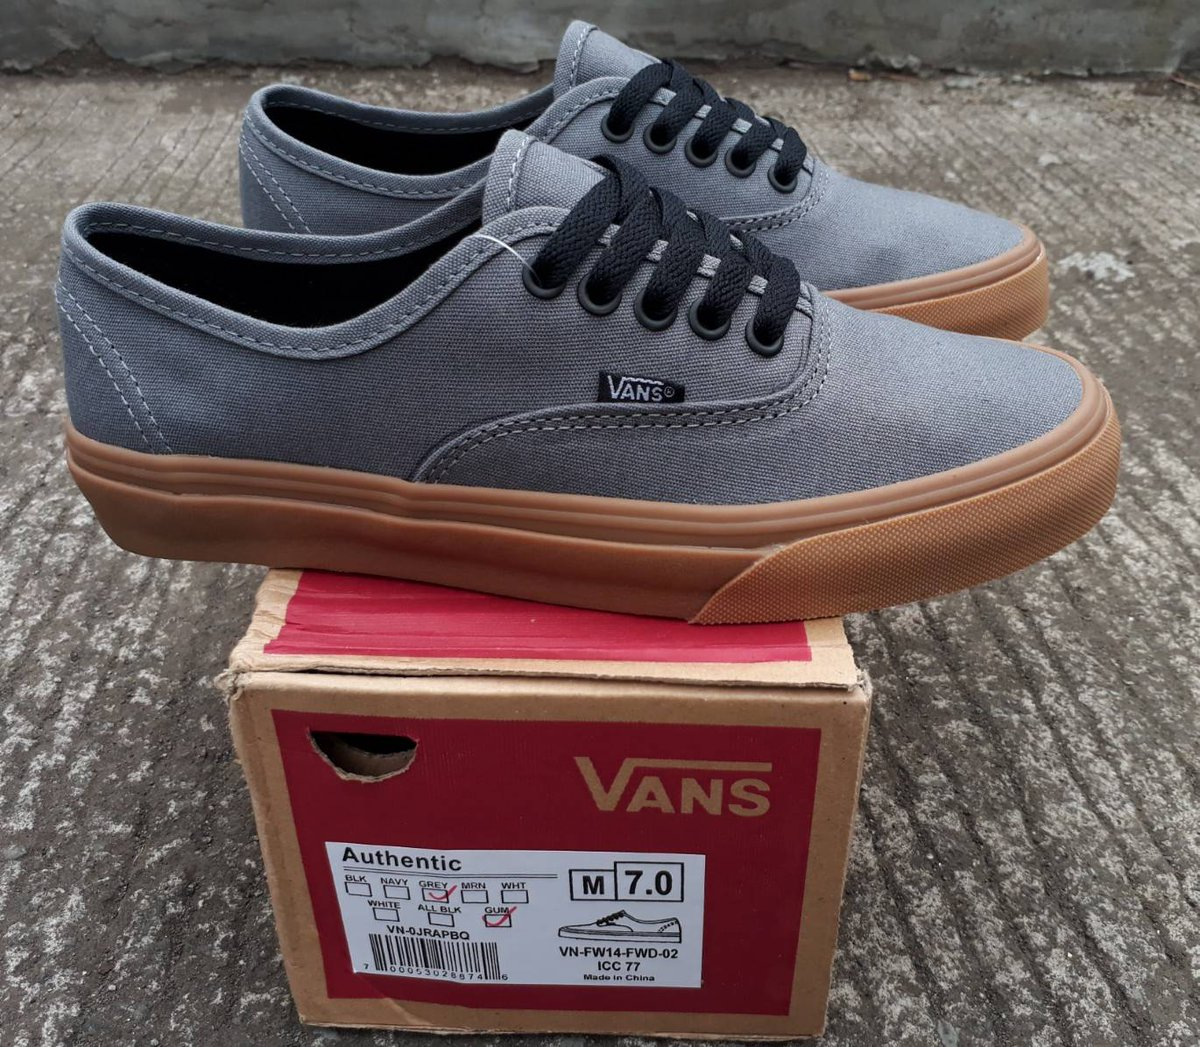 b6c0b9137f READY STOCK PREMIUM BNIB MADE IN CHINA WAFFLE ICC VANS AUTHENTIC GREY GUM  SIZE   39 40 41 42 43 250.000 Lubang tali hitam  sepatuvans  pic.twitter.com  ...